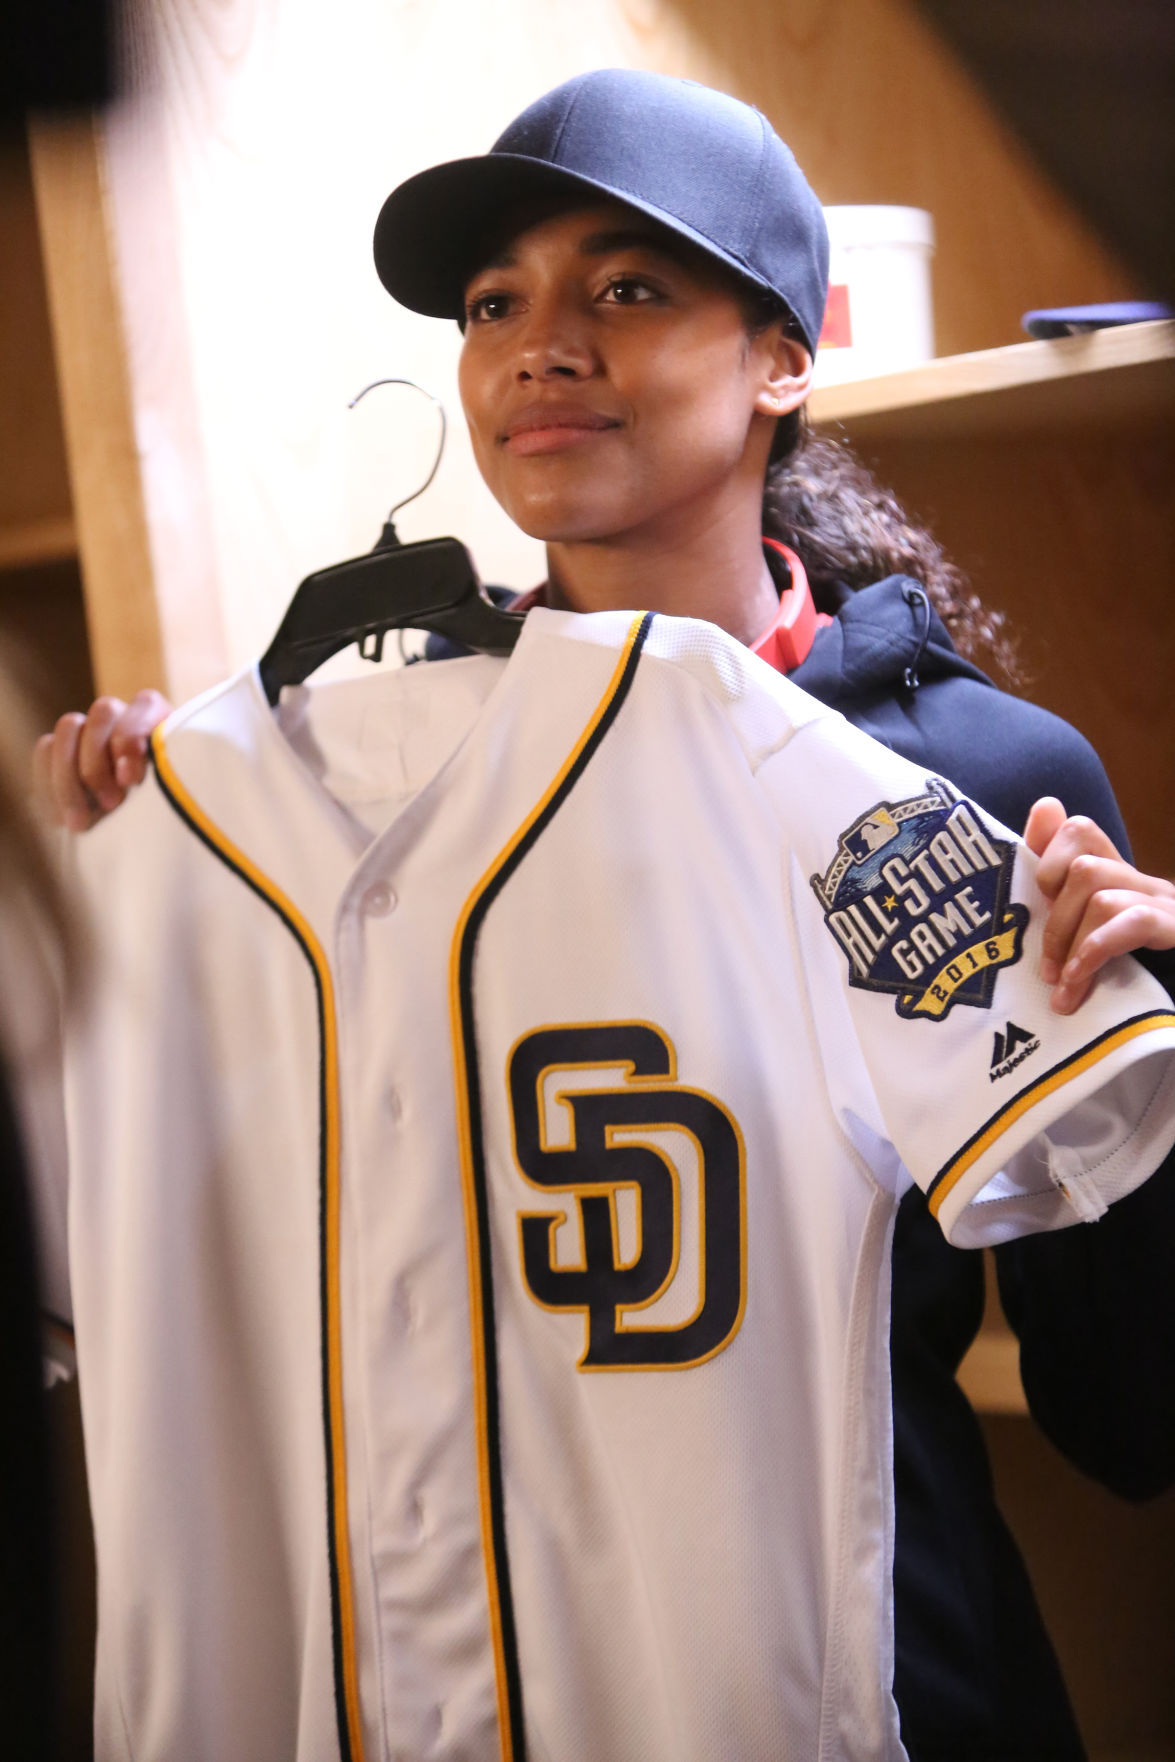 Game changer: Kylie Bunbury could affect future of baseball